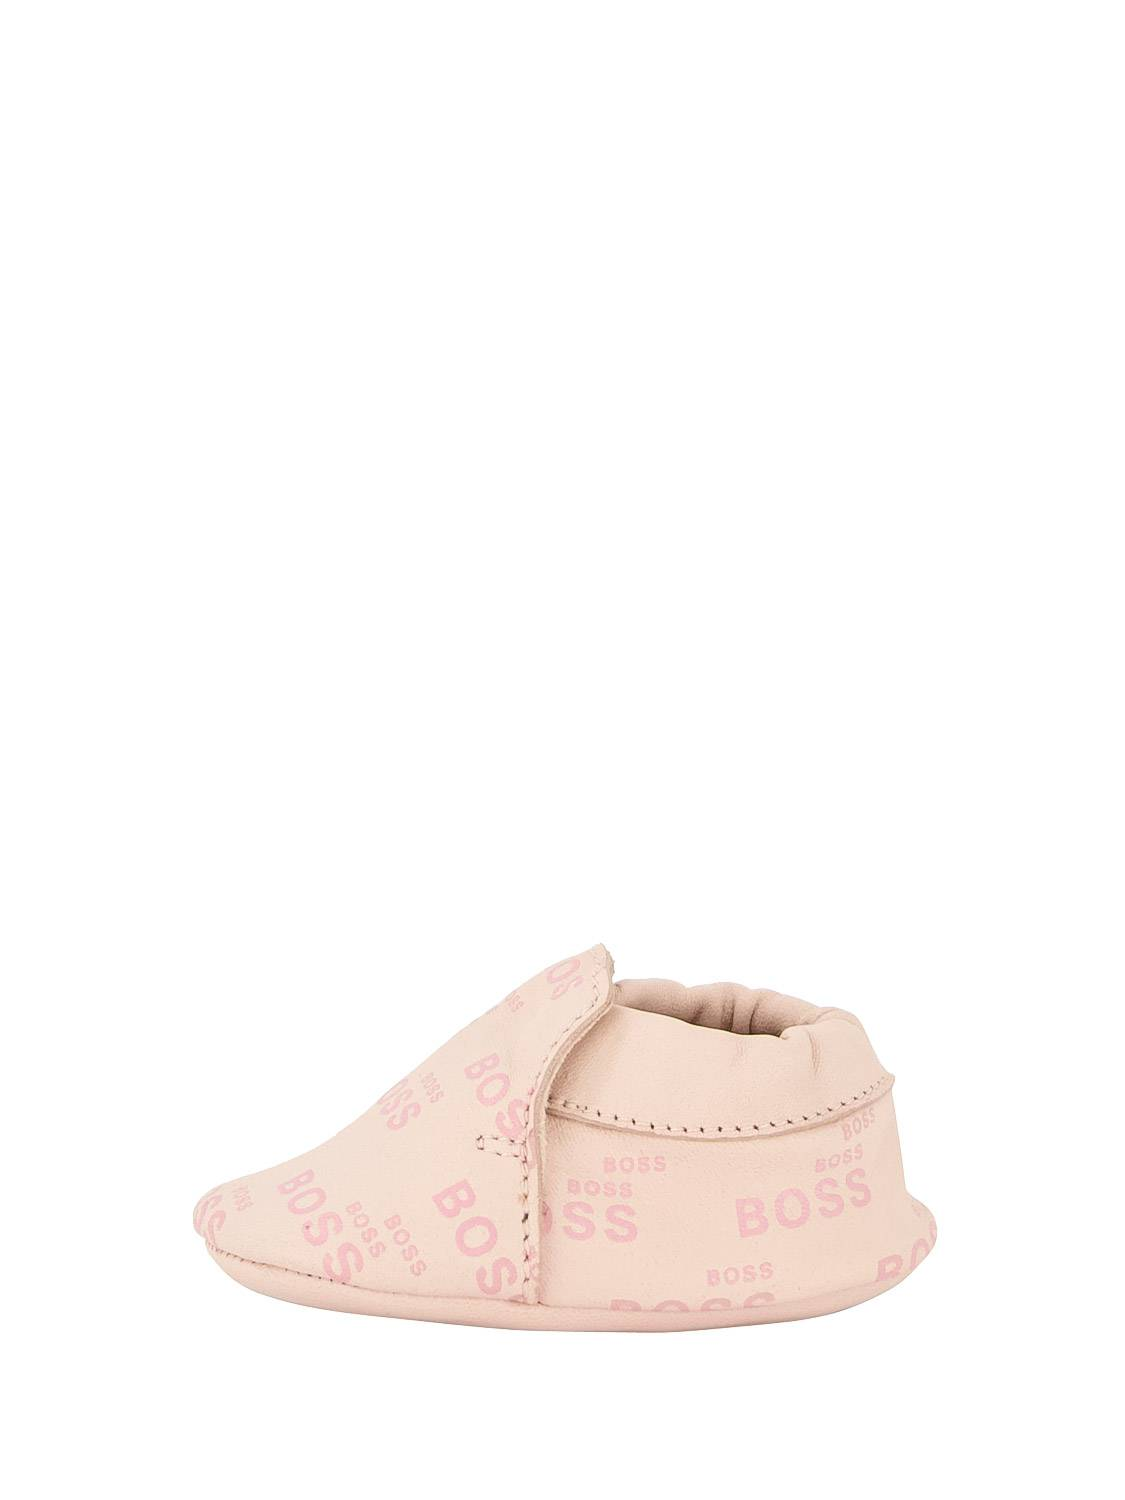 Boss Kids Baby Shoes for girls